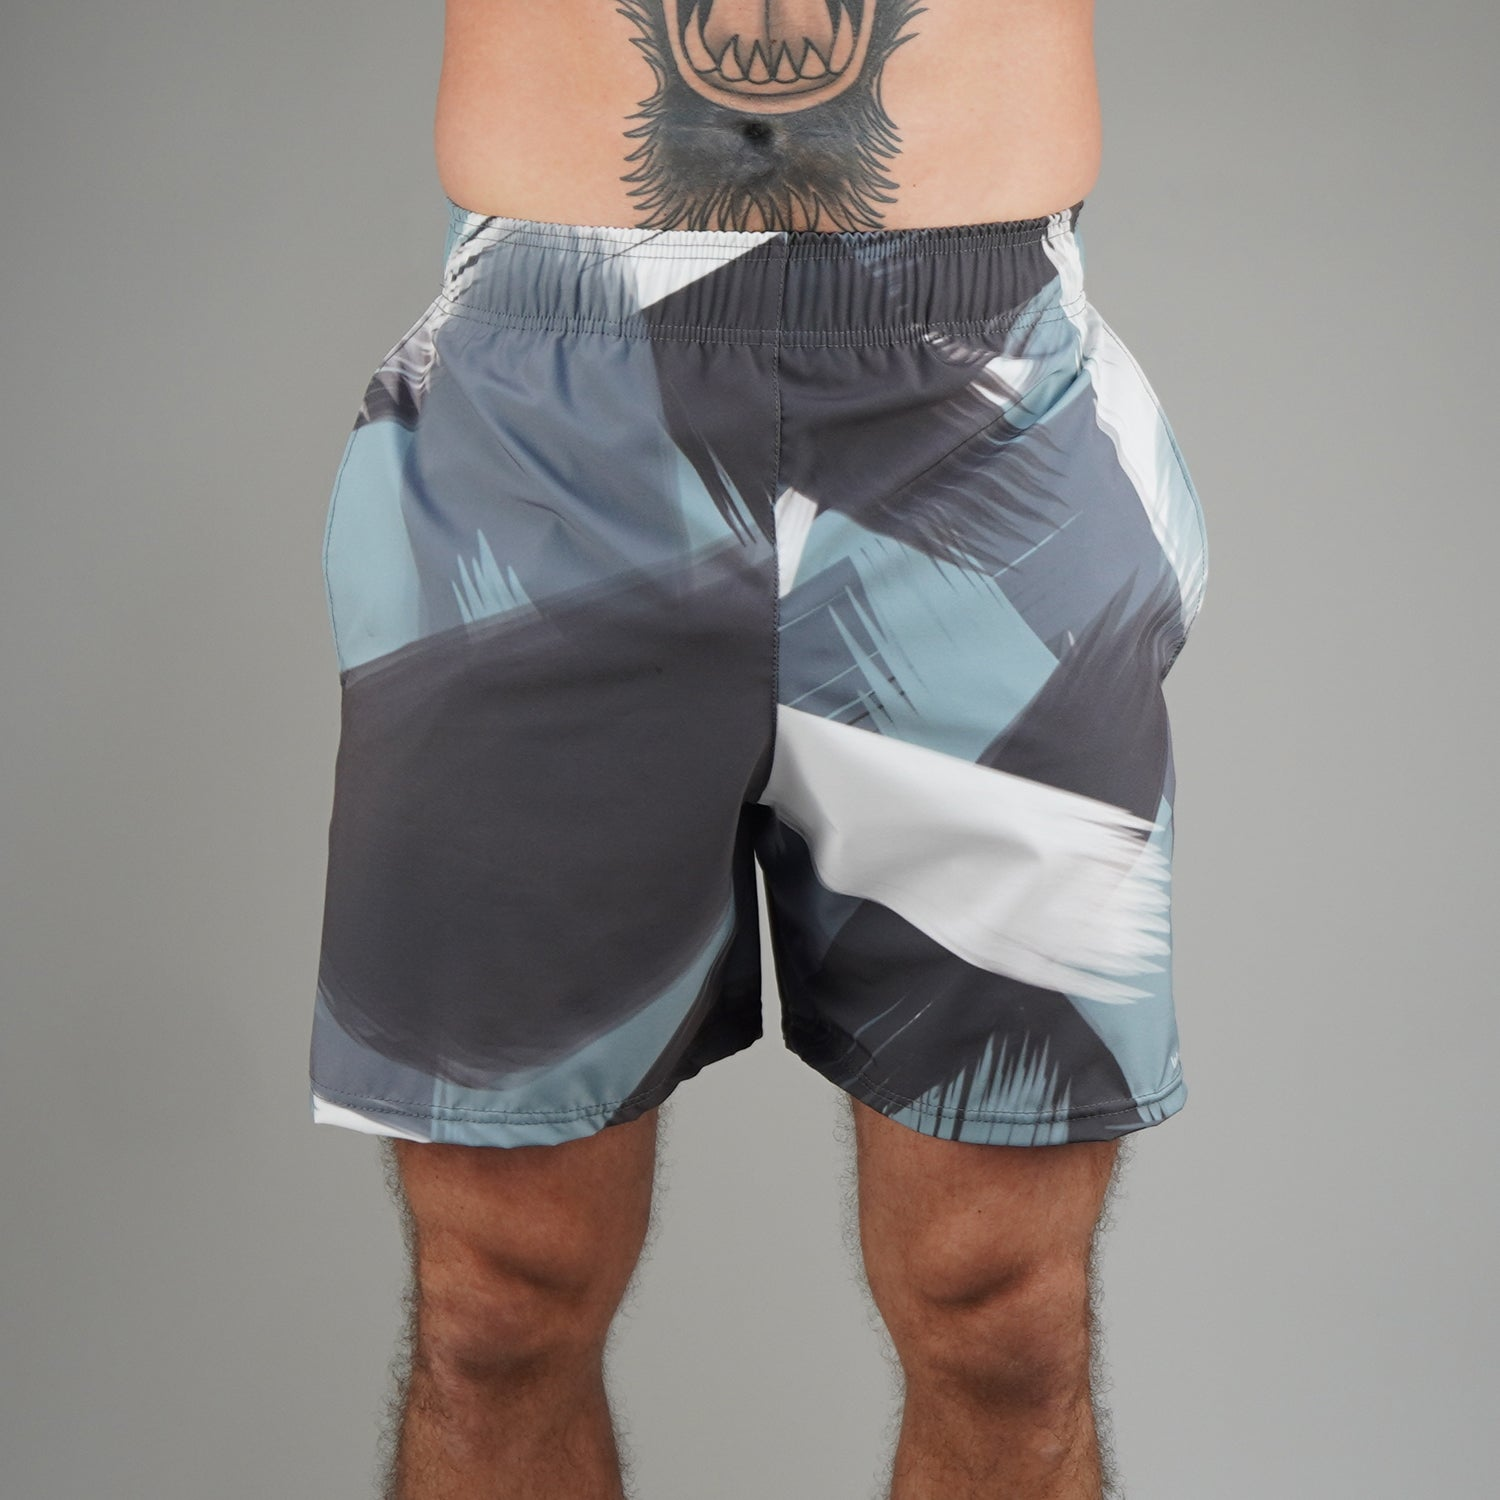 Featherblade Training Shorts